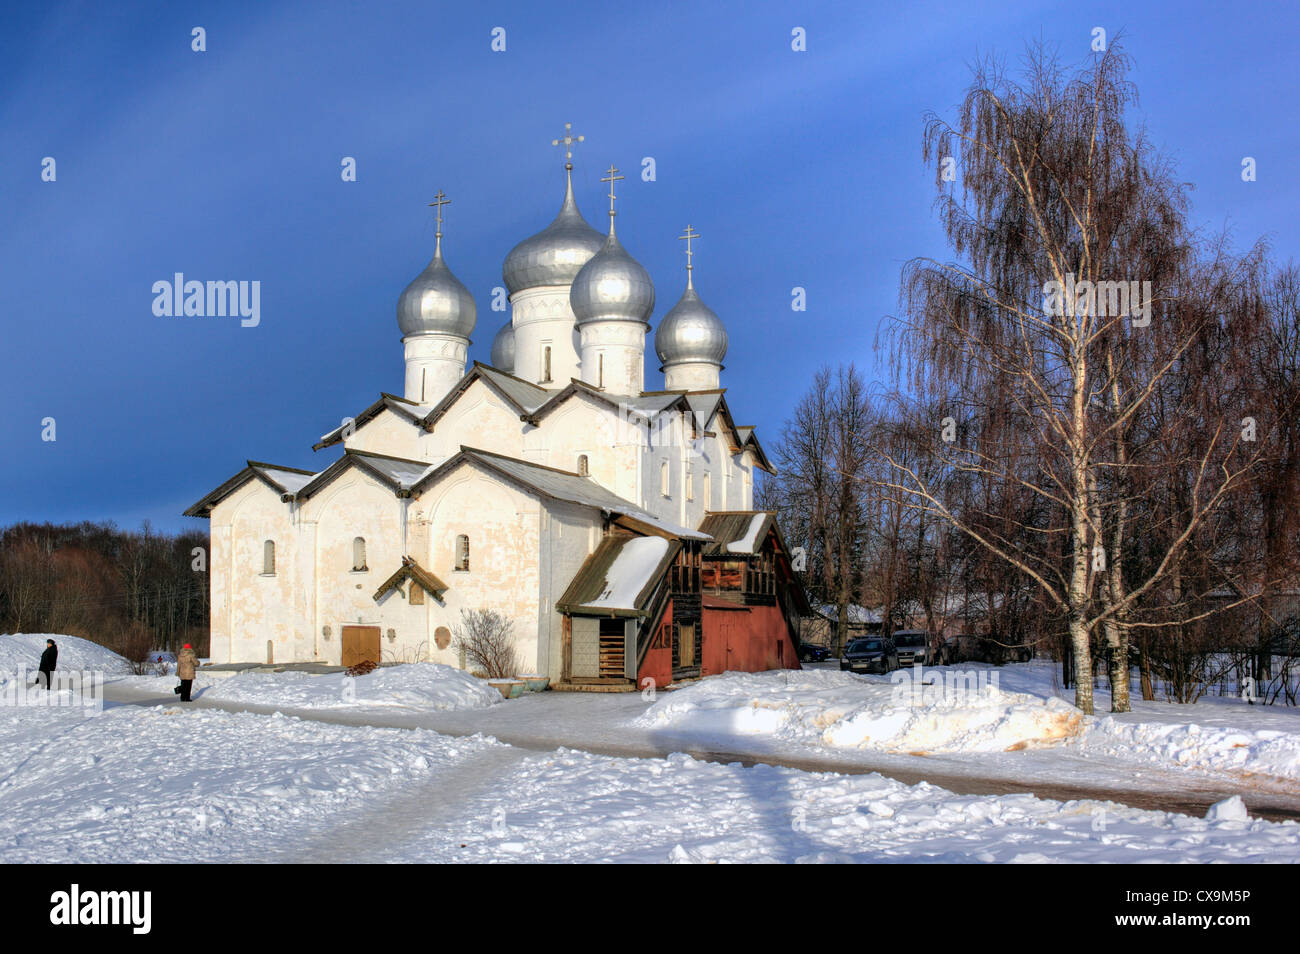 Church of Sts Boris and Gleb in Plotniki (1536), Veliky Novgorod, Novgorod region, Russia - Stock Image